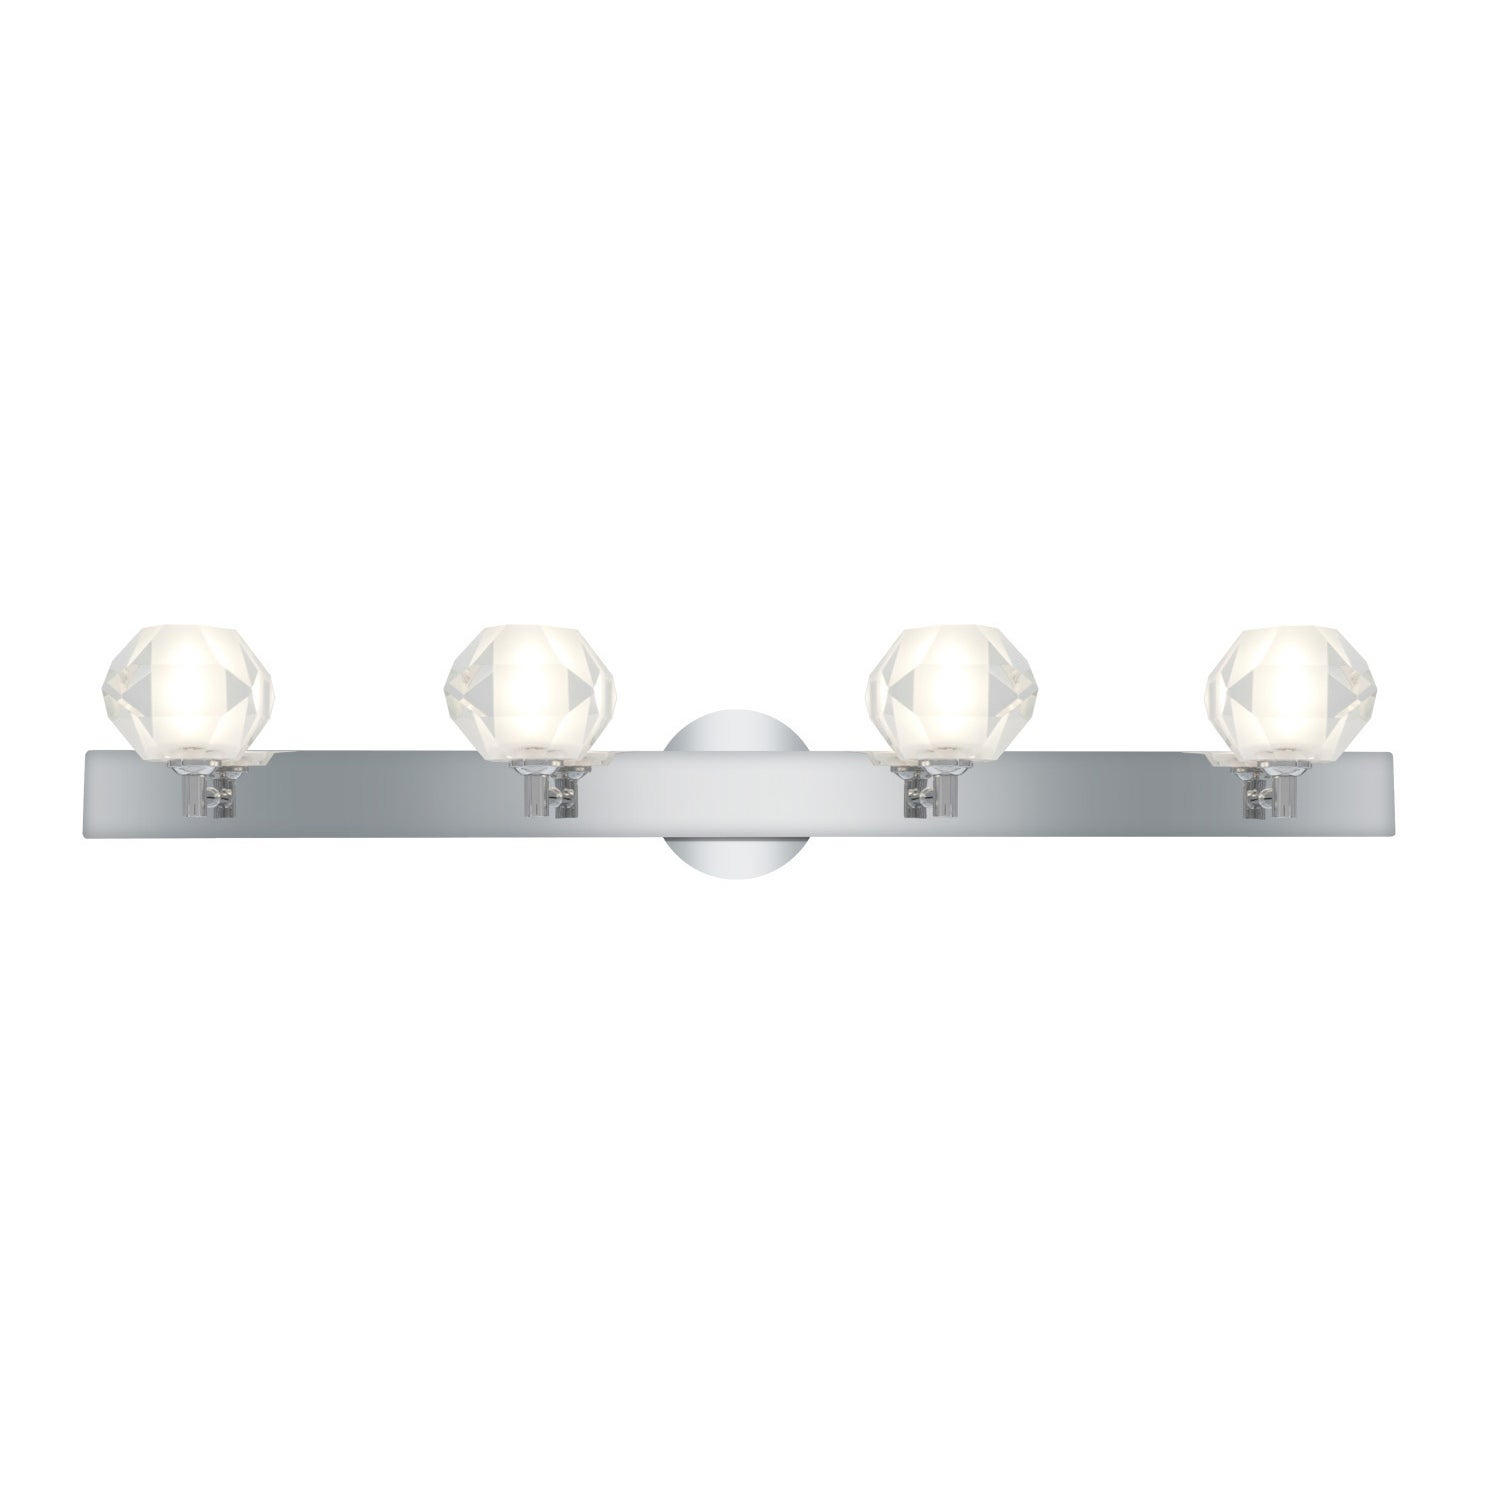 Access Glas'e 4-light Chrome Diamond Vanity Fixture